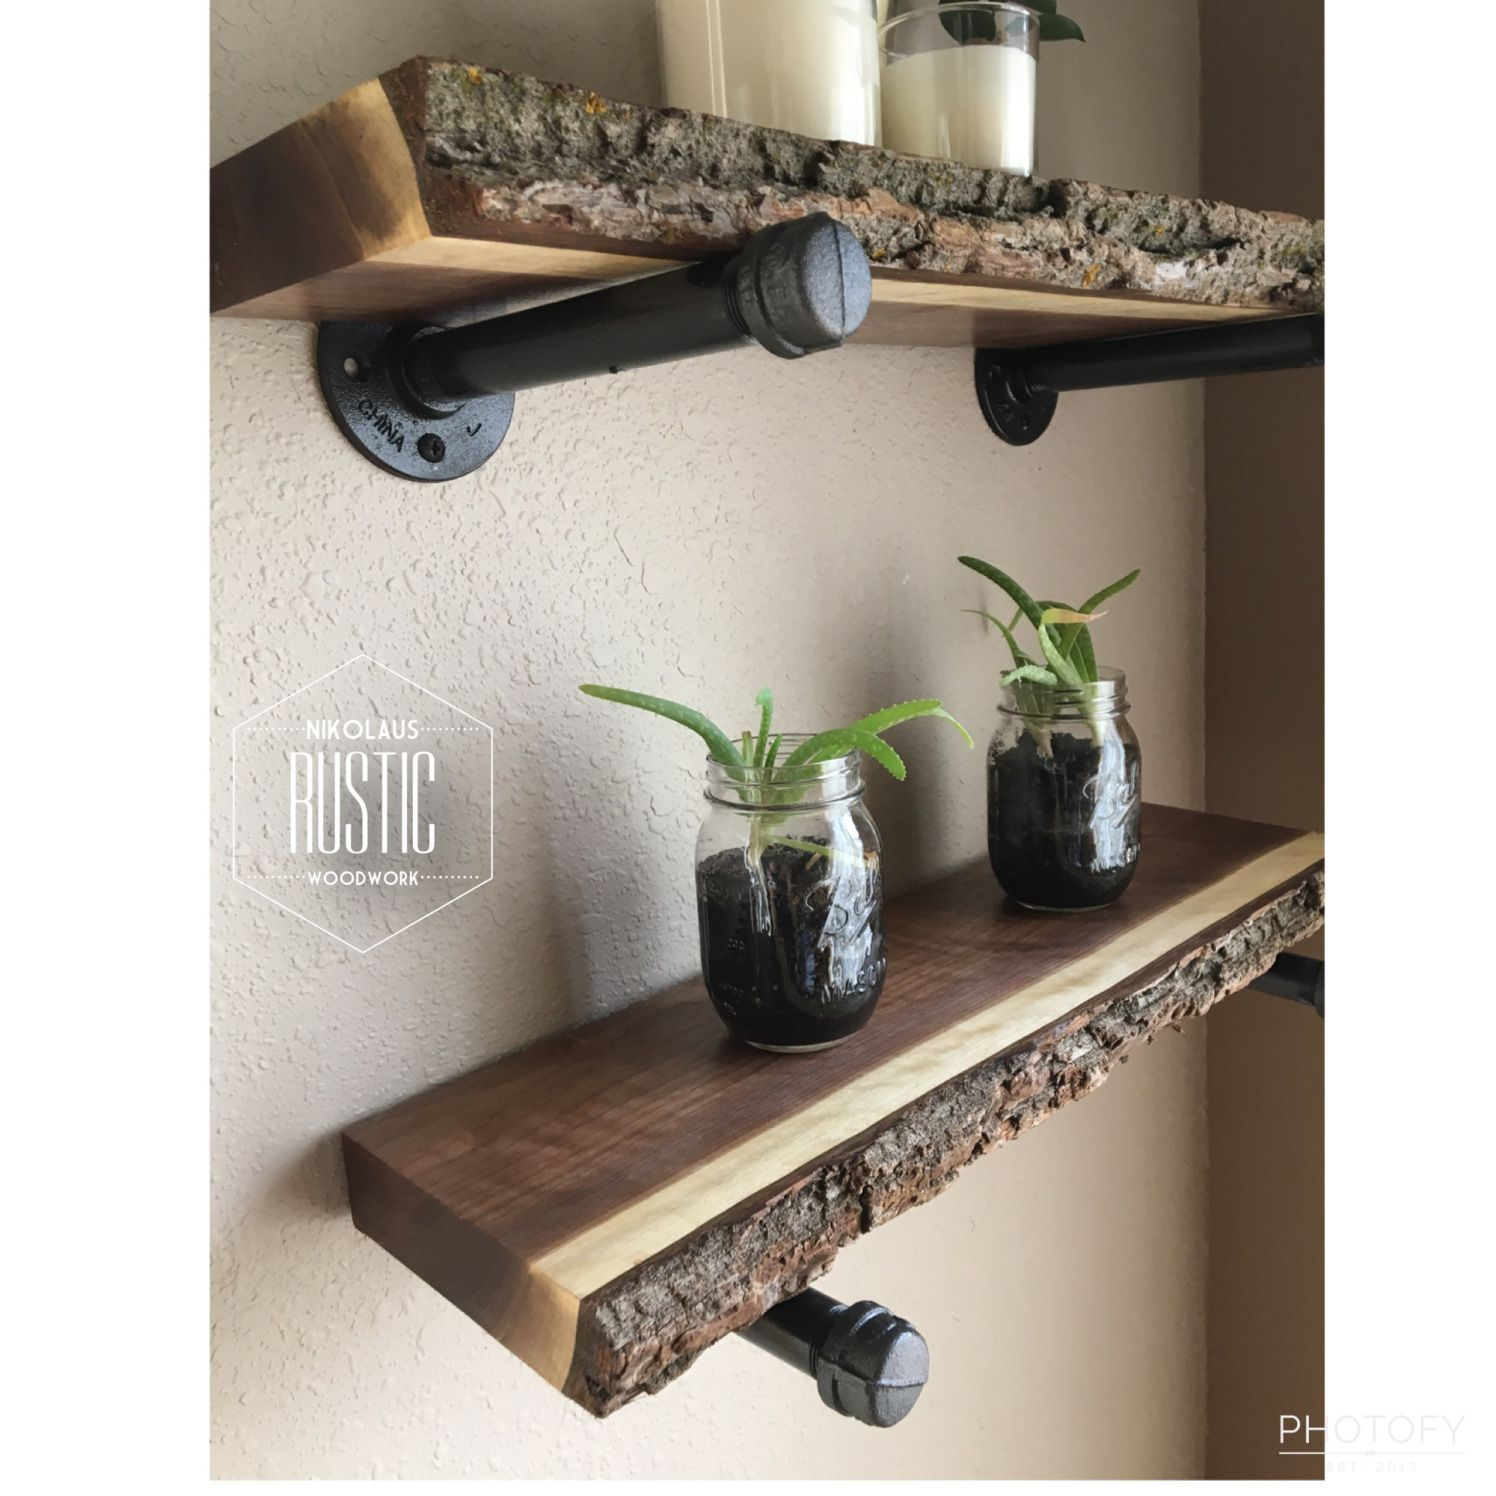 black walnut live edge shelves from nikolausrusticwoodwork pipe floating with gas base small glass shelf wall towel storage racks kitchen counter corbels hung dressing table